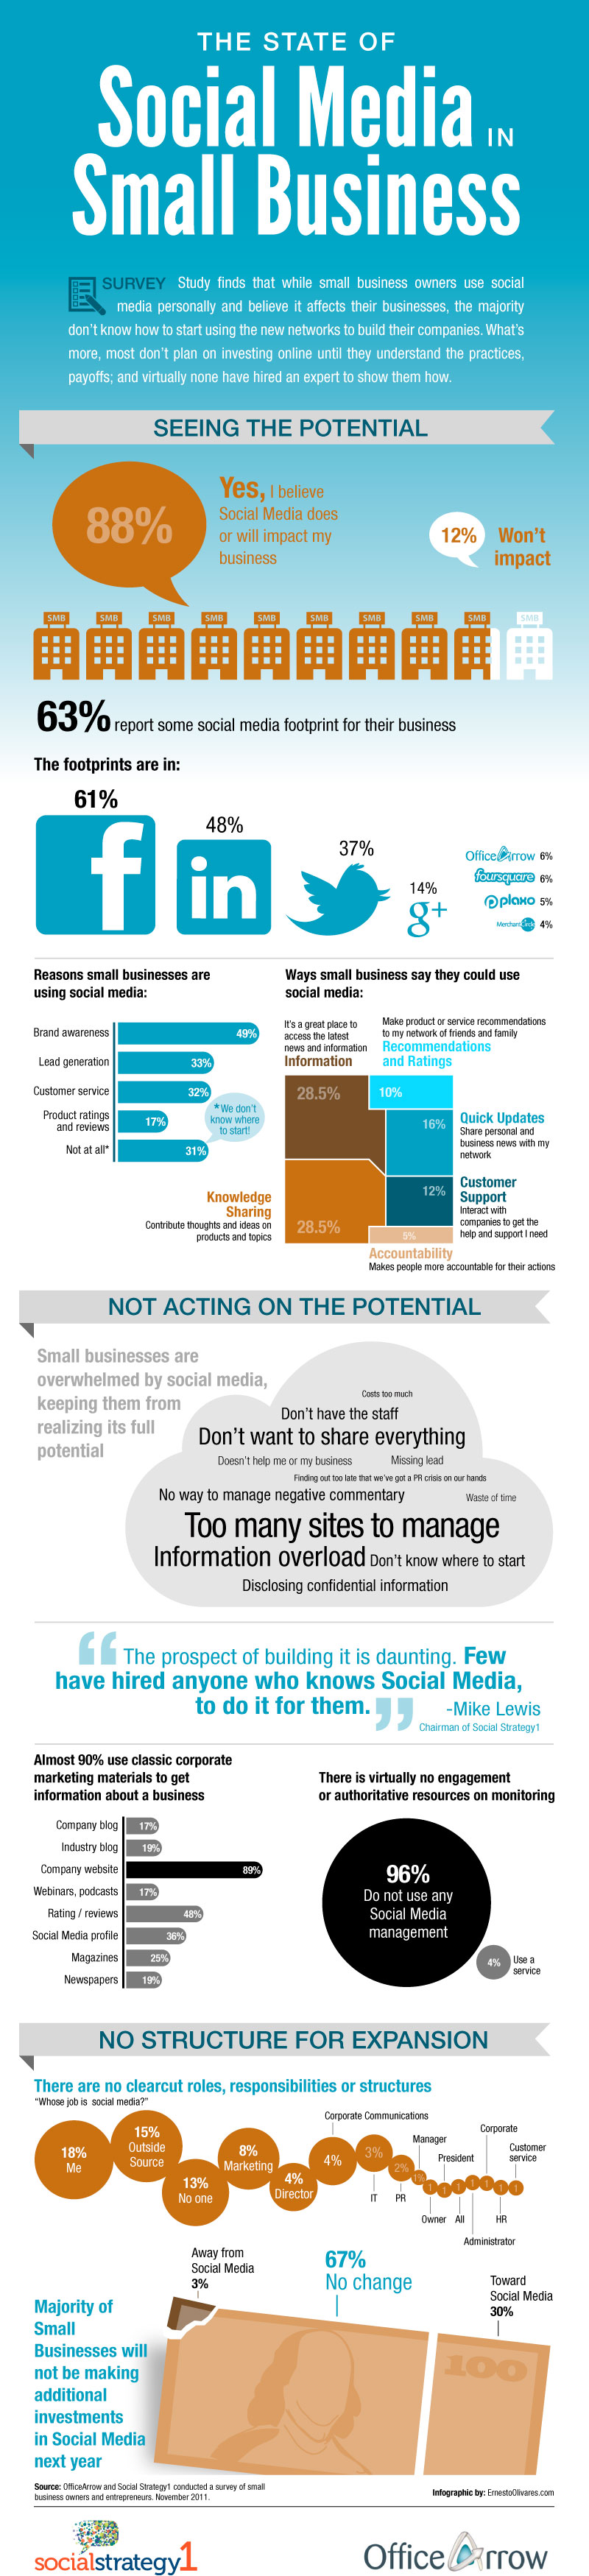 social media small business infographic